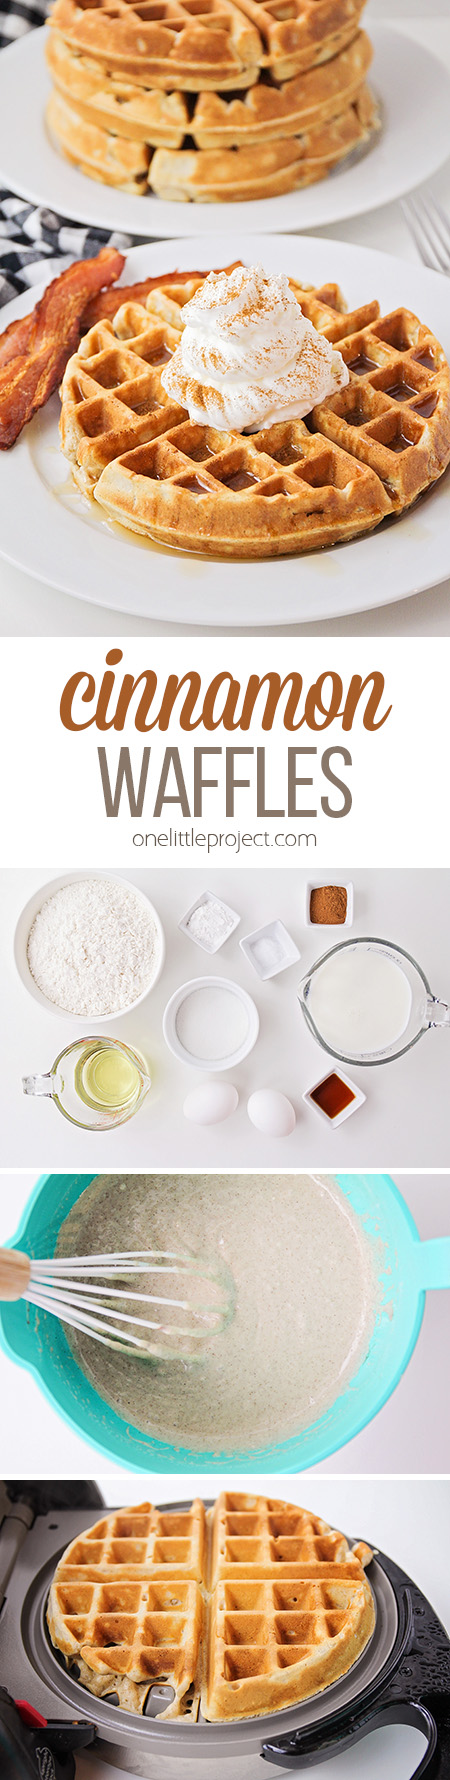 These light and fluffy cinnamon waffles are crisp on the outside, and have the perfect hint of spice. They'll make any breakfast extra special!